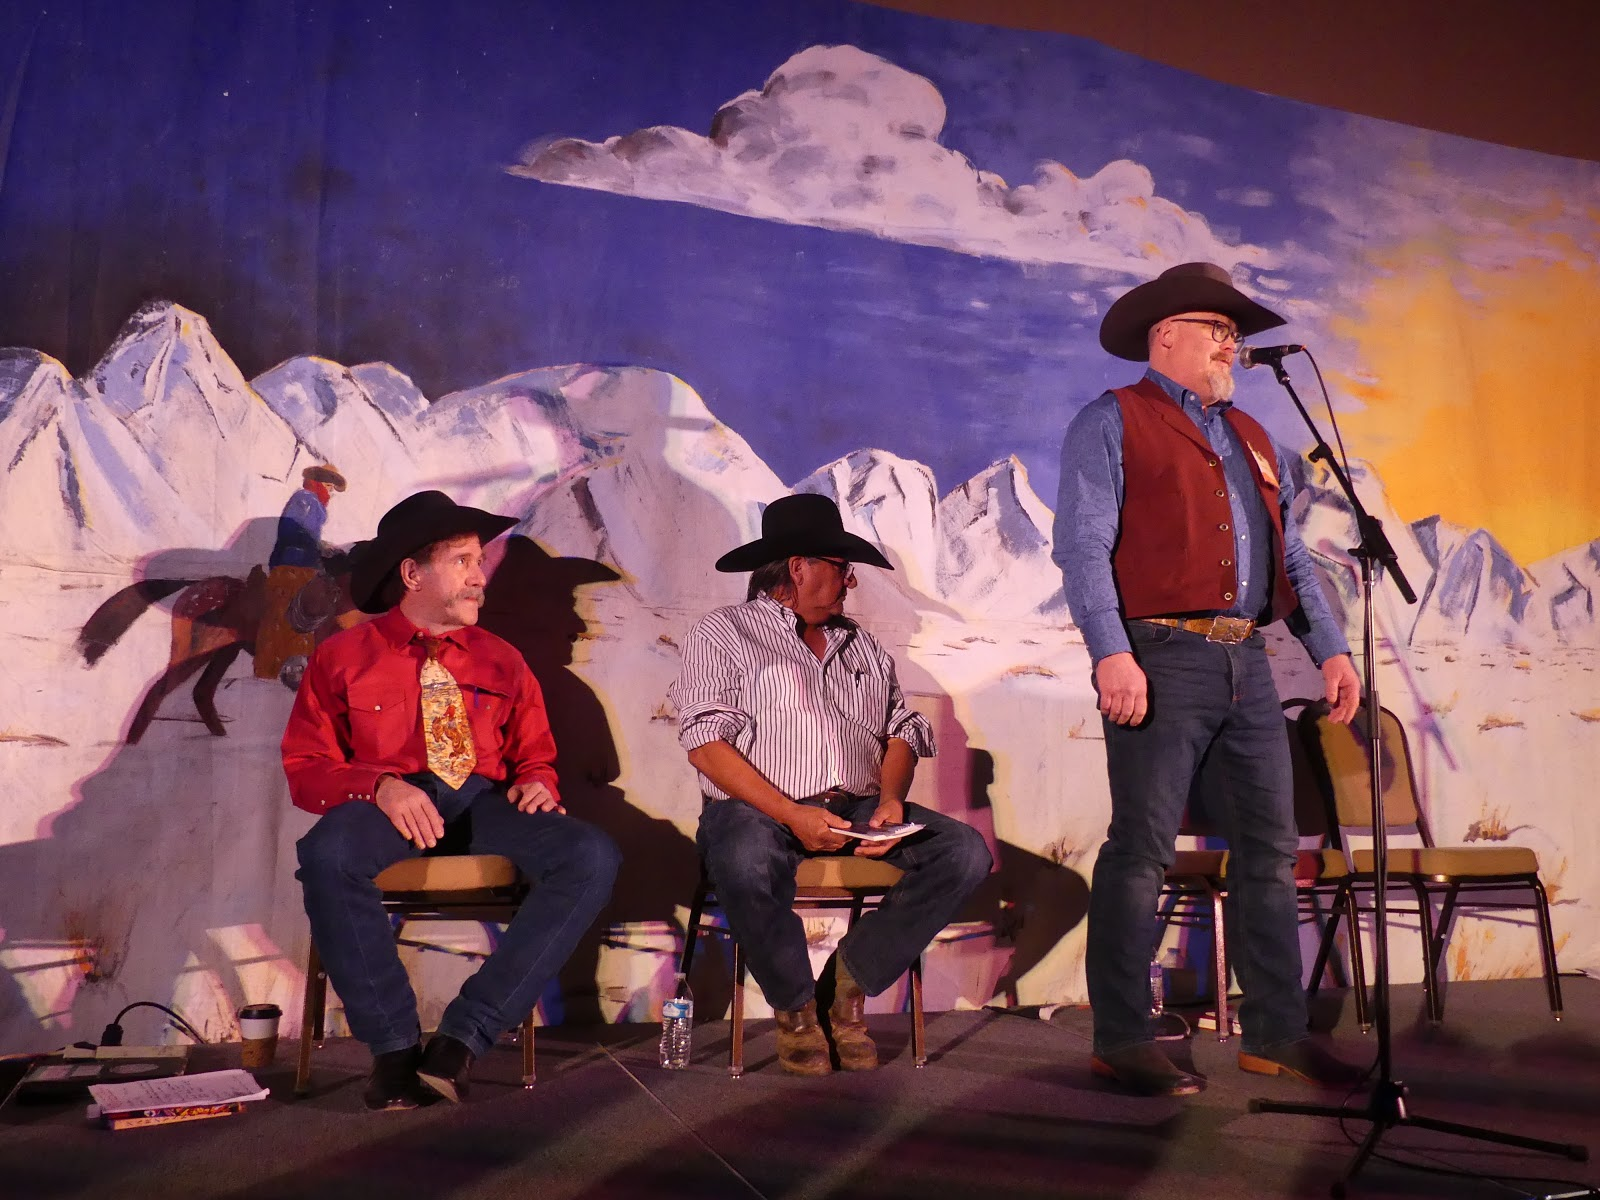 Traveling Tramps: Days packed with Cowboy Culture